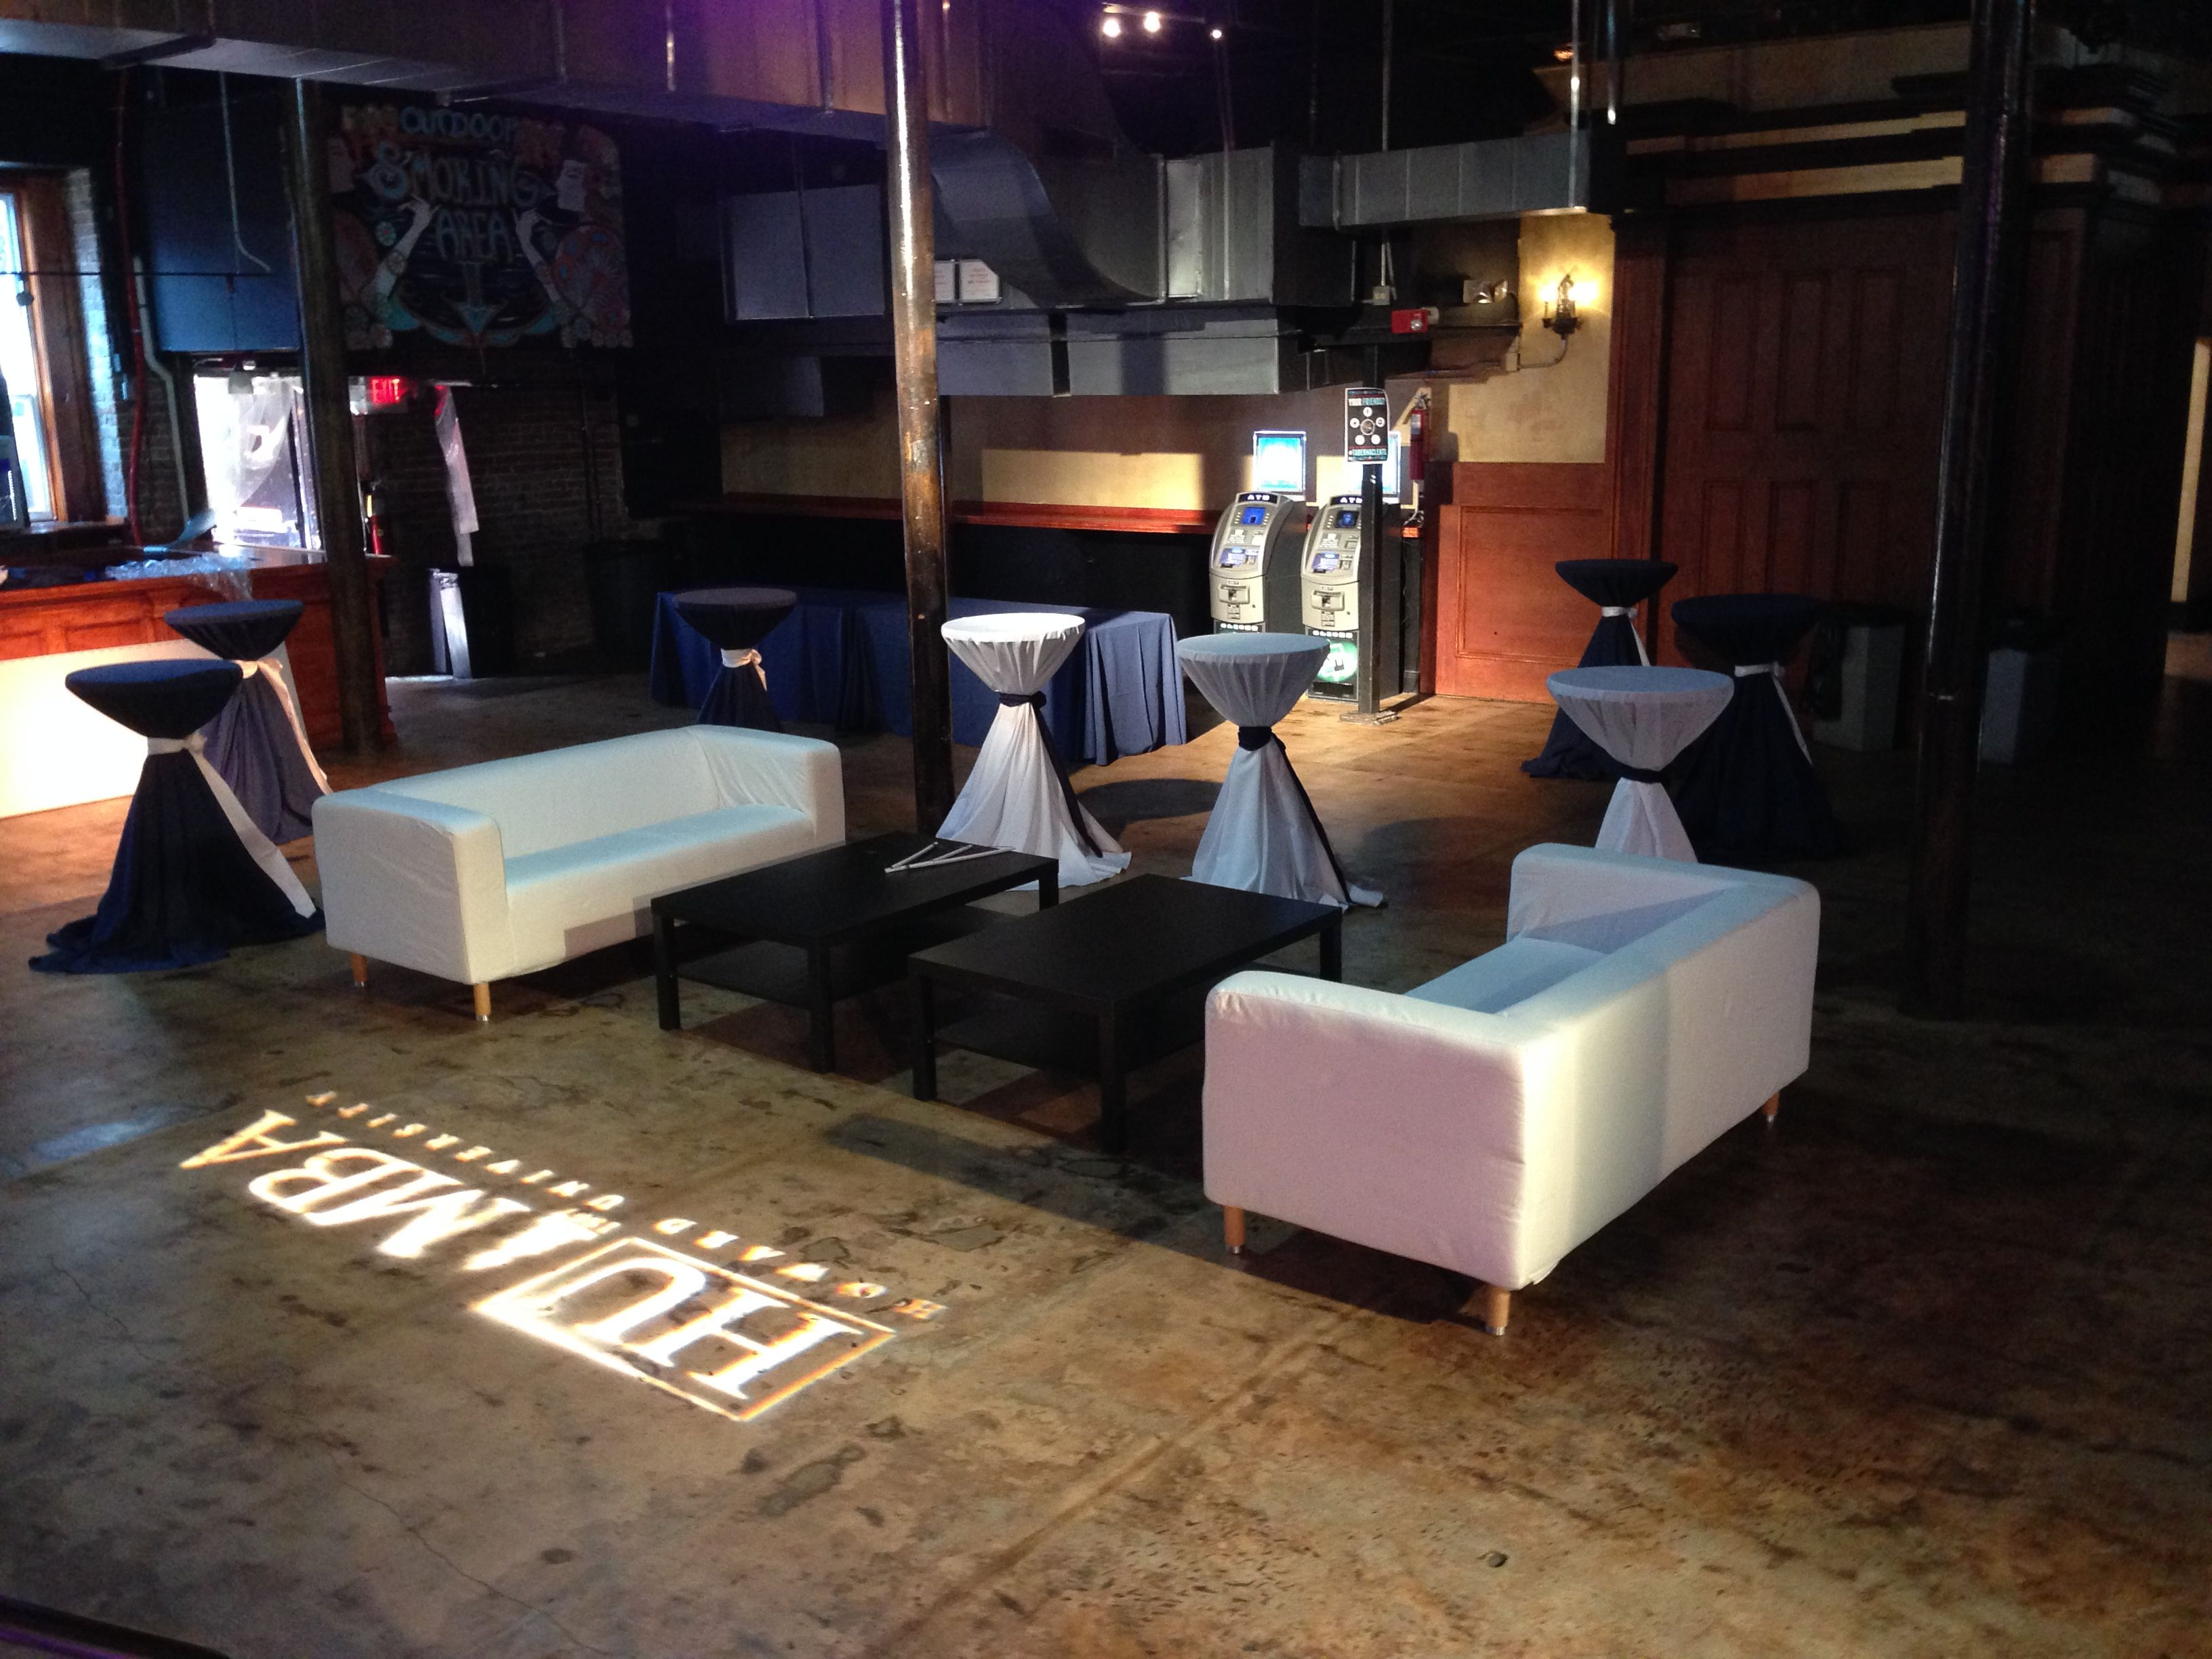 We set up a few lounges at the Tabernacle Great venue to work